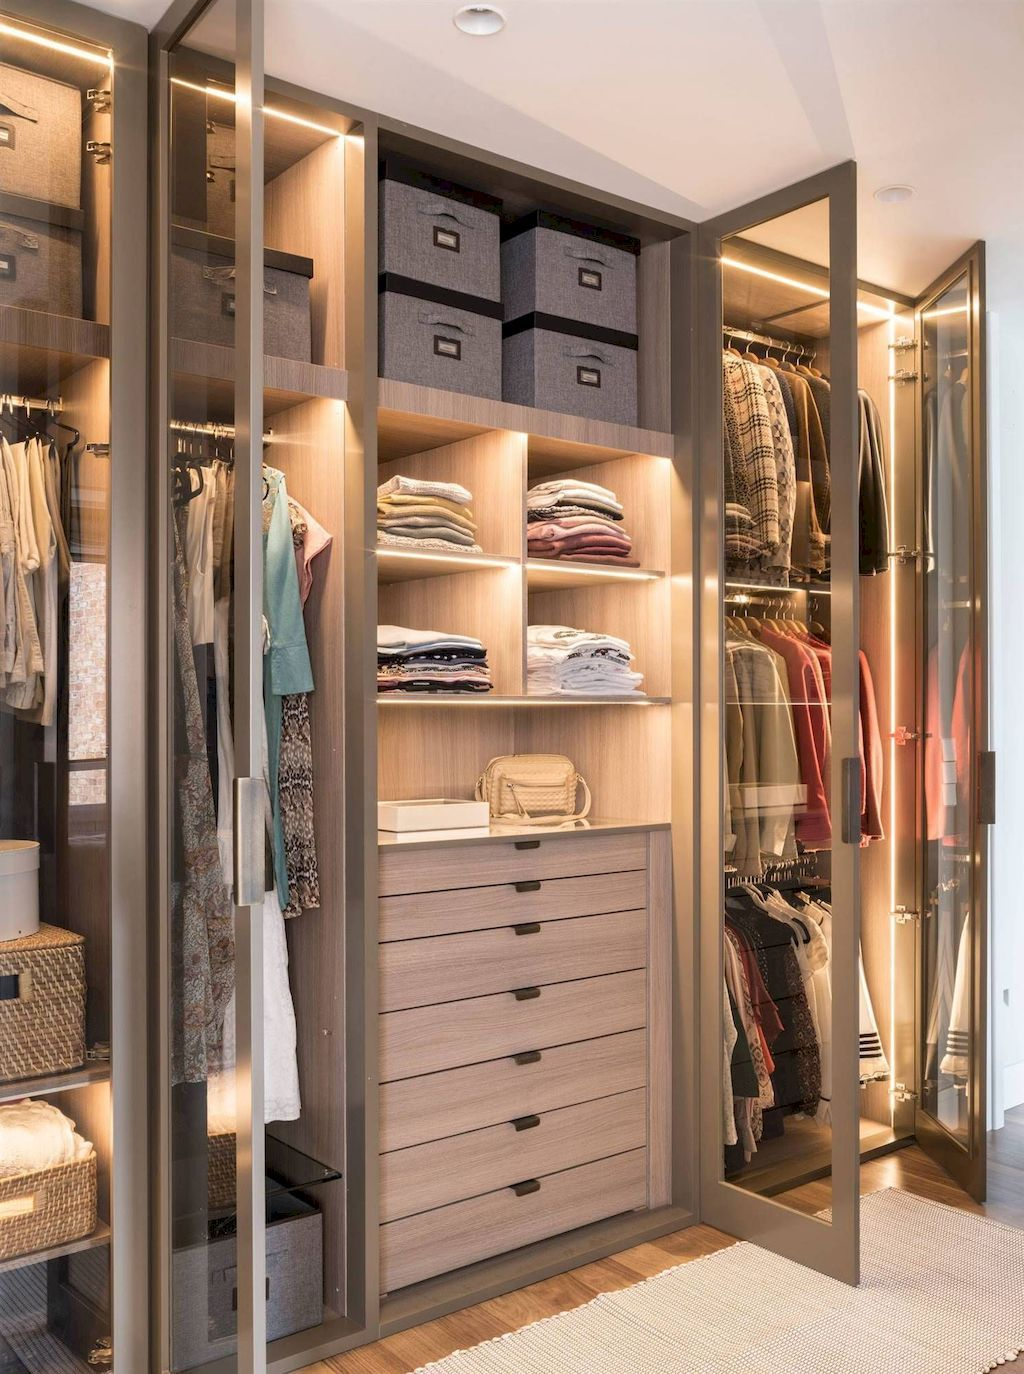 Ideas Of Functional And Practical Walk In Closet For Home: Closet Design To Make Your Life Luxury - Ideaz Home